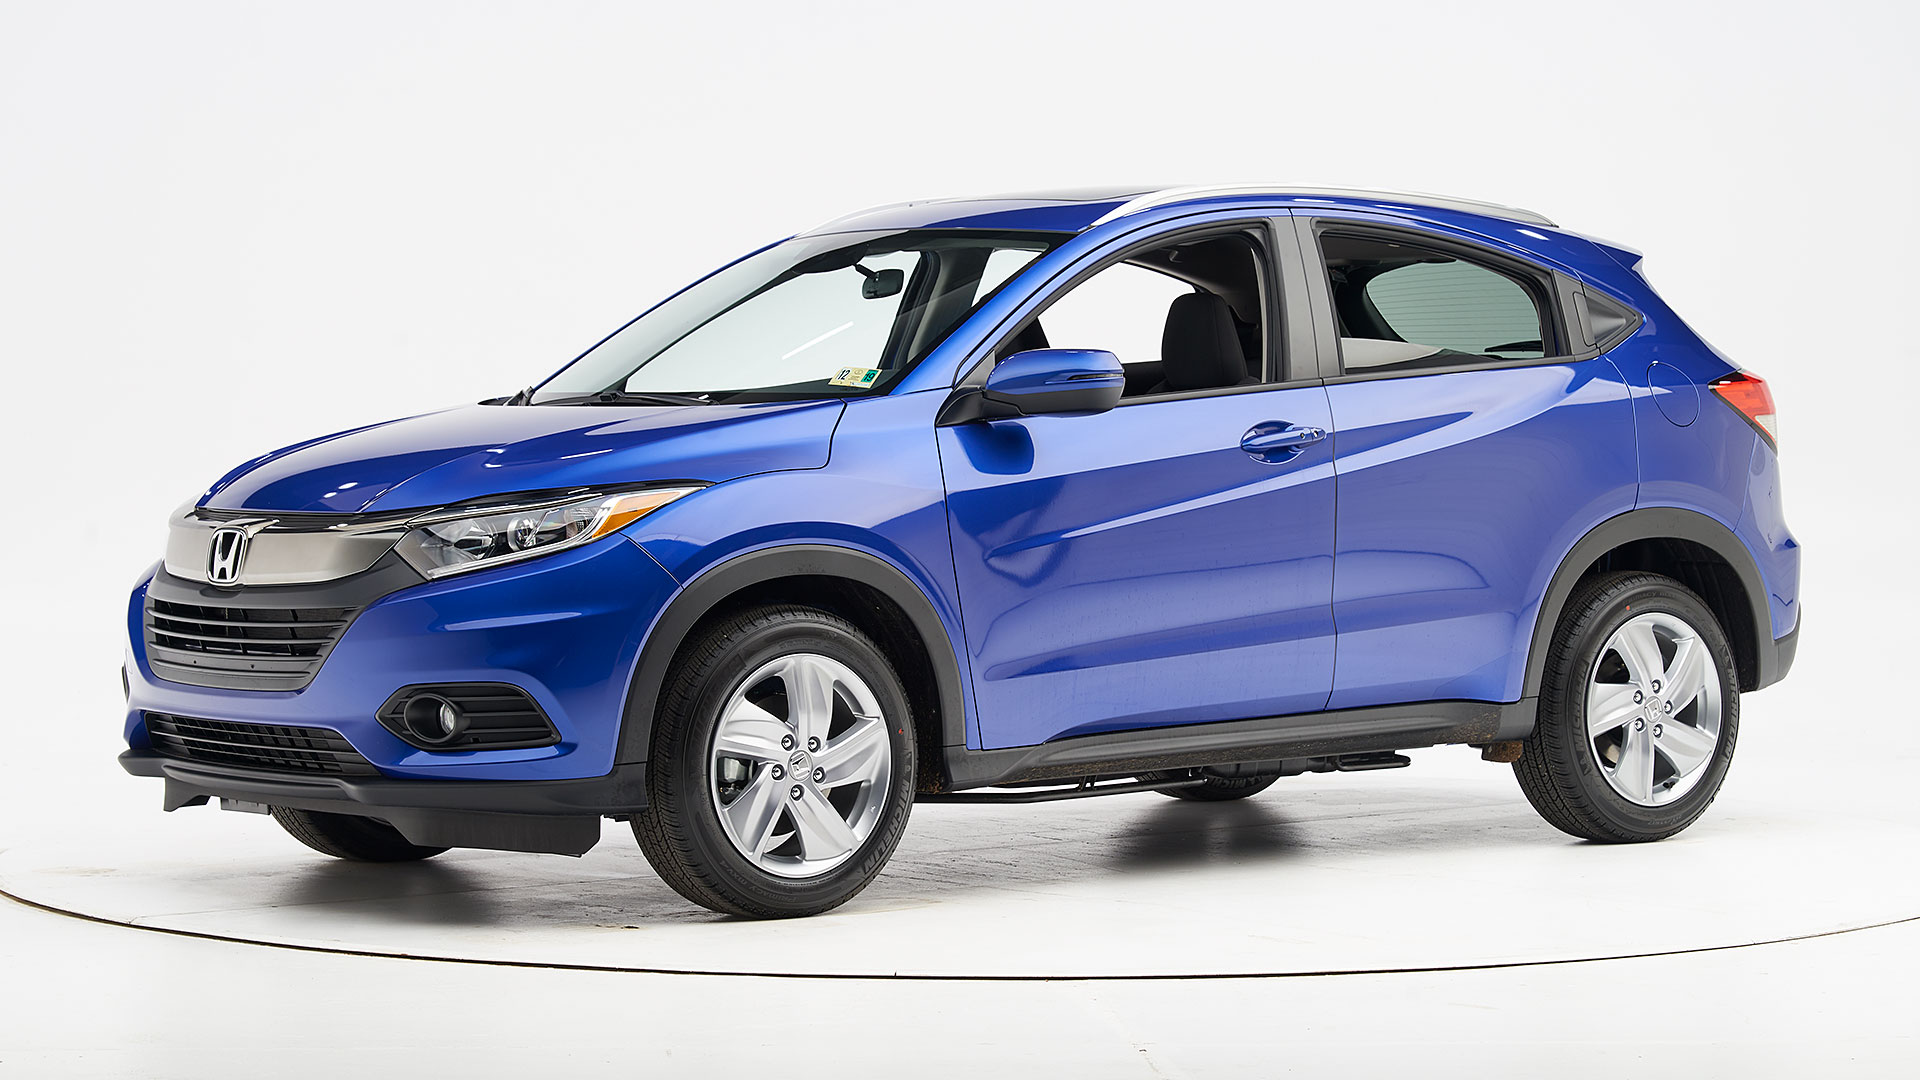 2019 Honda HR-V 4-door SUV